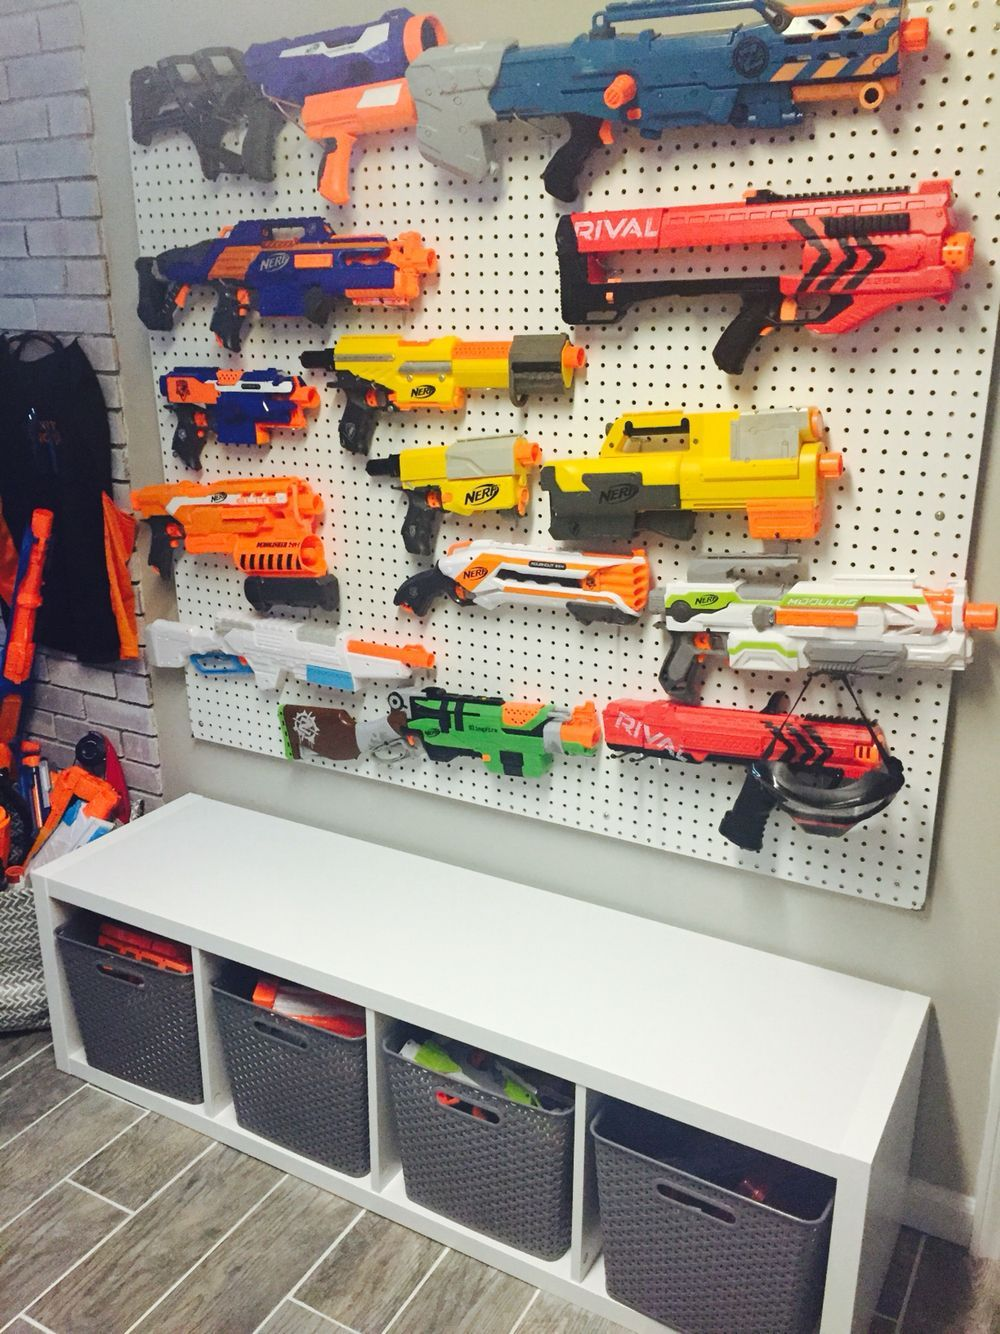 Unique Toy Storage Ideas For Kid's Playroom, Bedroom & Small Space